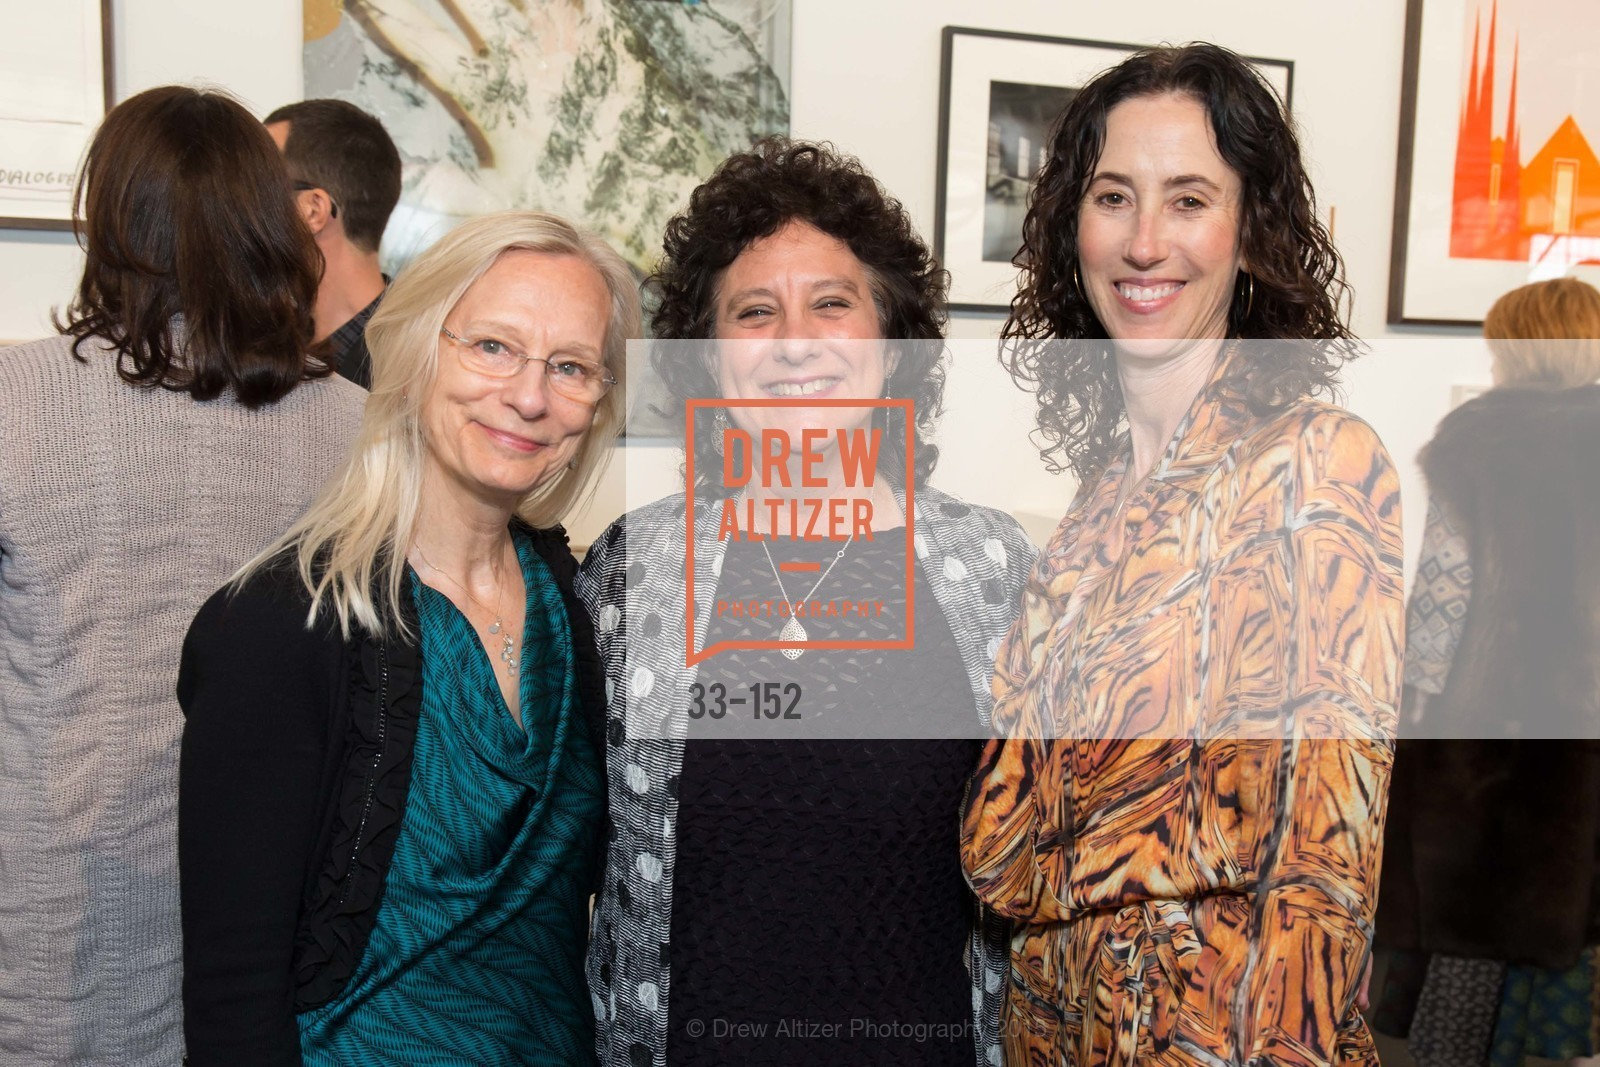 Matty Person, Sharon Tanenbaum, Drusie Davis, Headlands Center for the Arts Benefit Auction, Fort Mason Festival, Pavilon, June 2nd, 2015,Drew Altizer, Drew Altizer Photography, full-service agency, private events, San Francisco photographer, photographer california